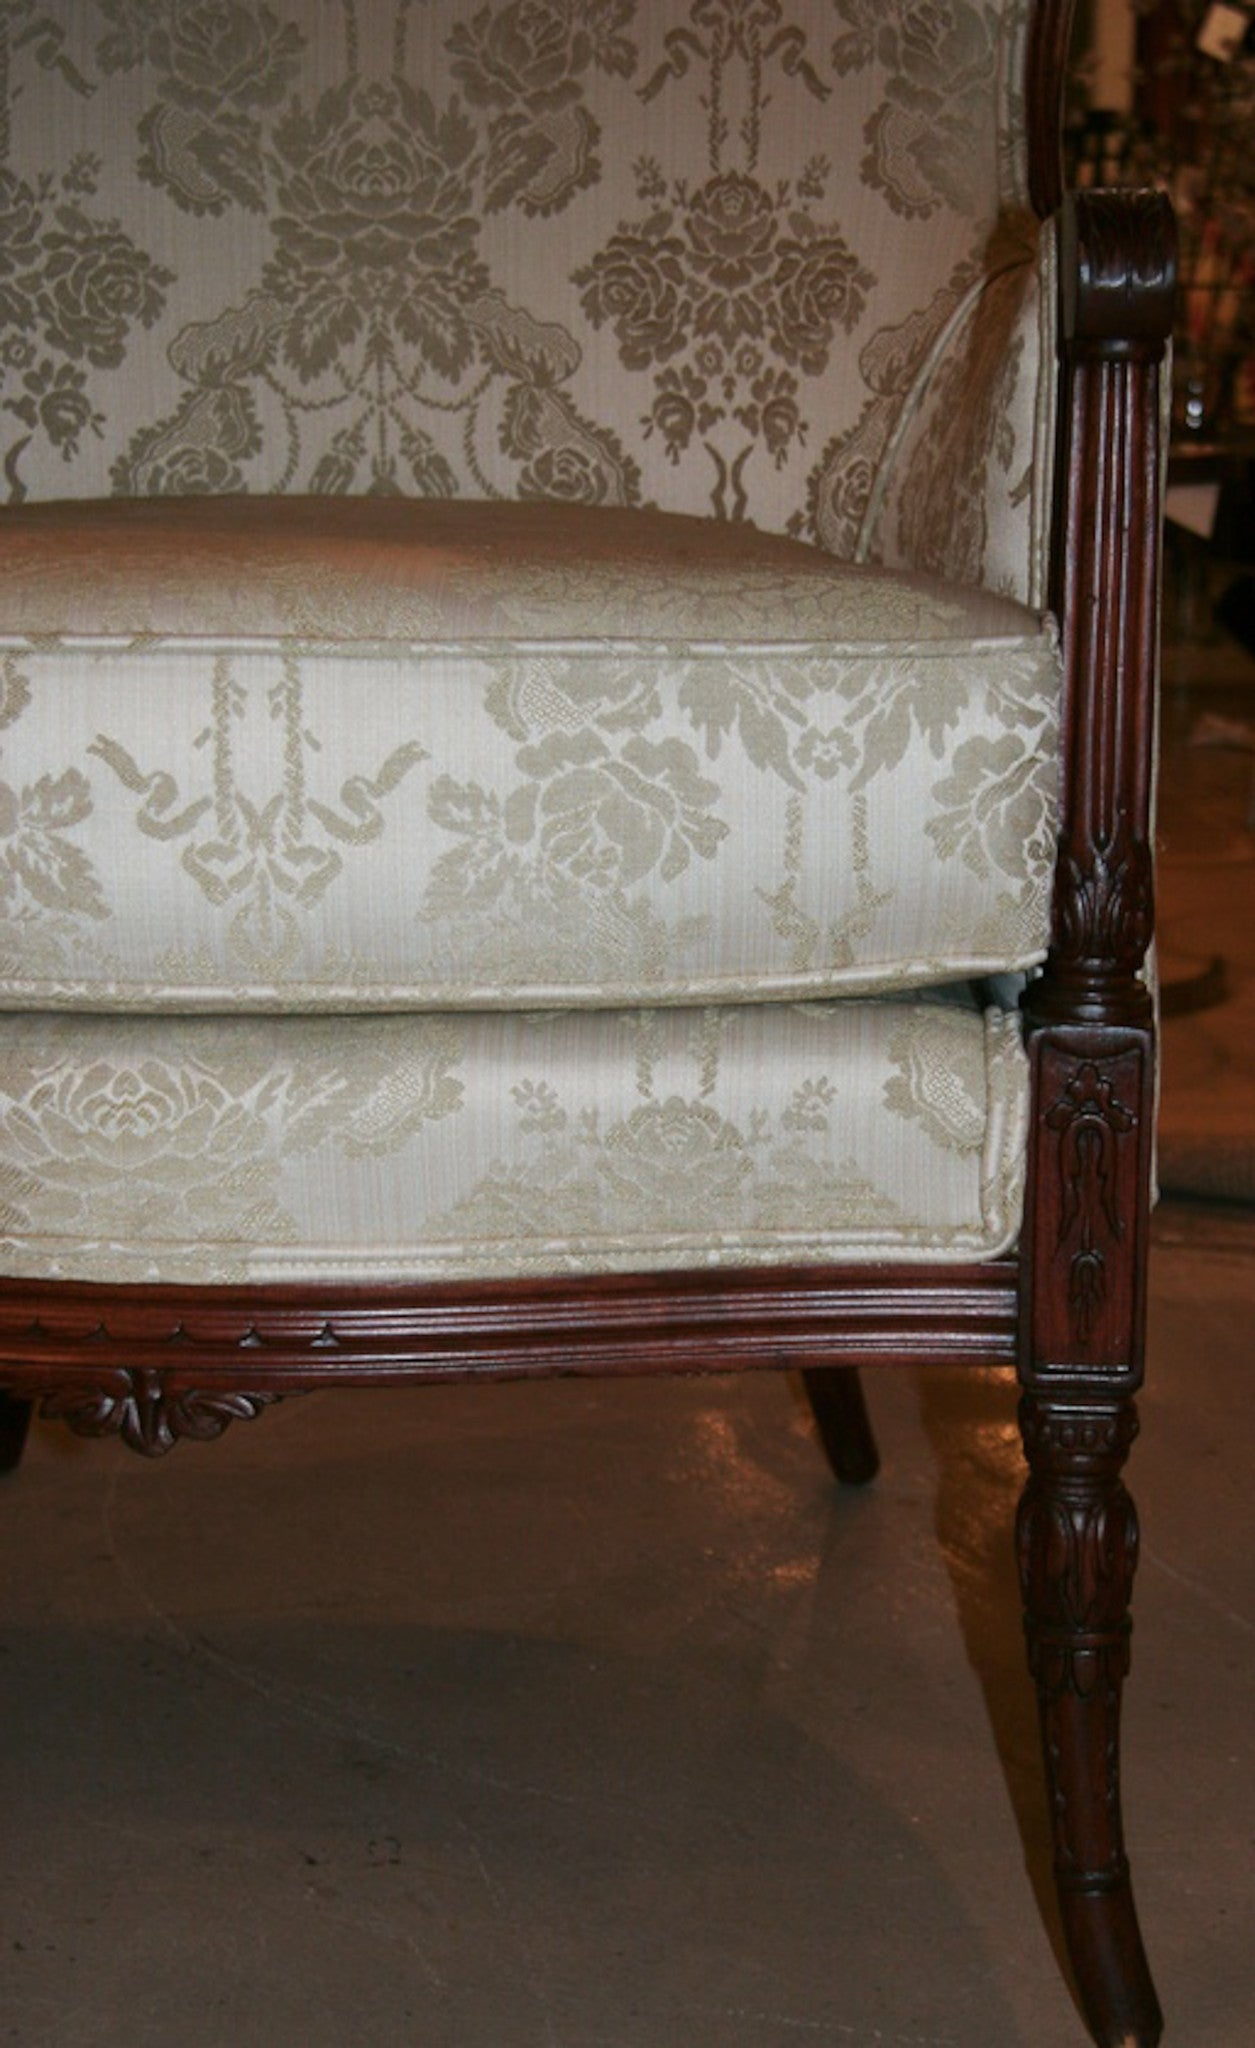 Antique Wing Back Chair - Vintage Damask Upholstery